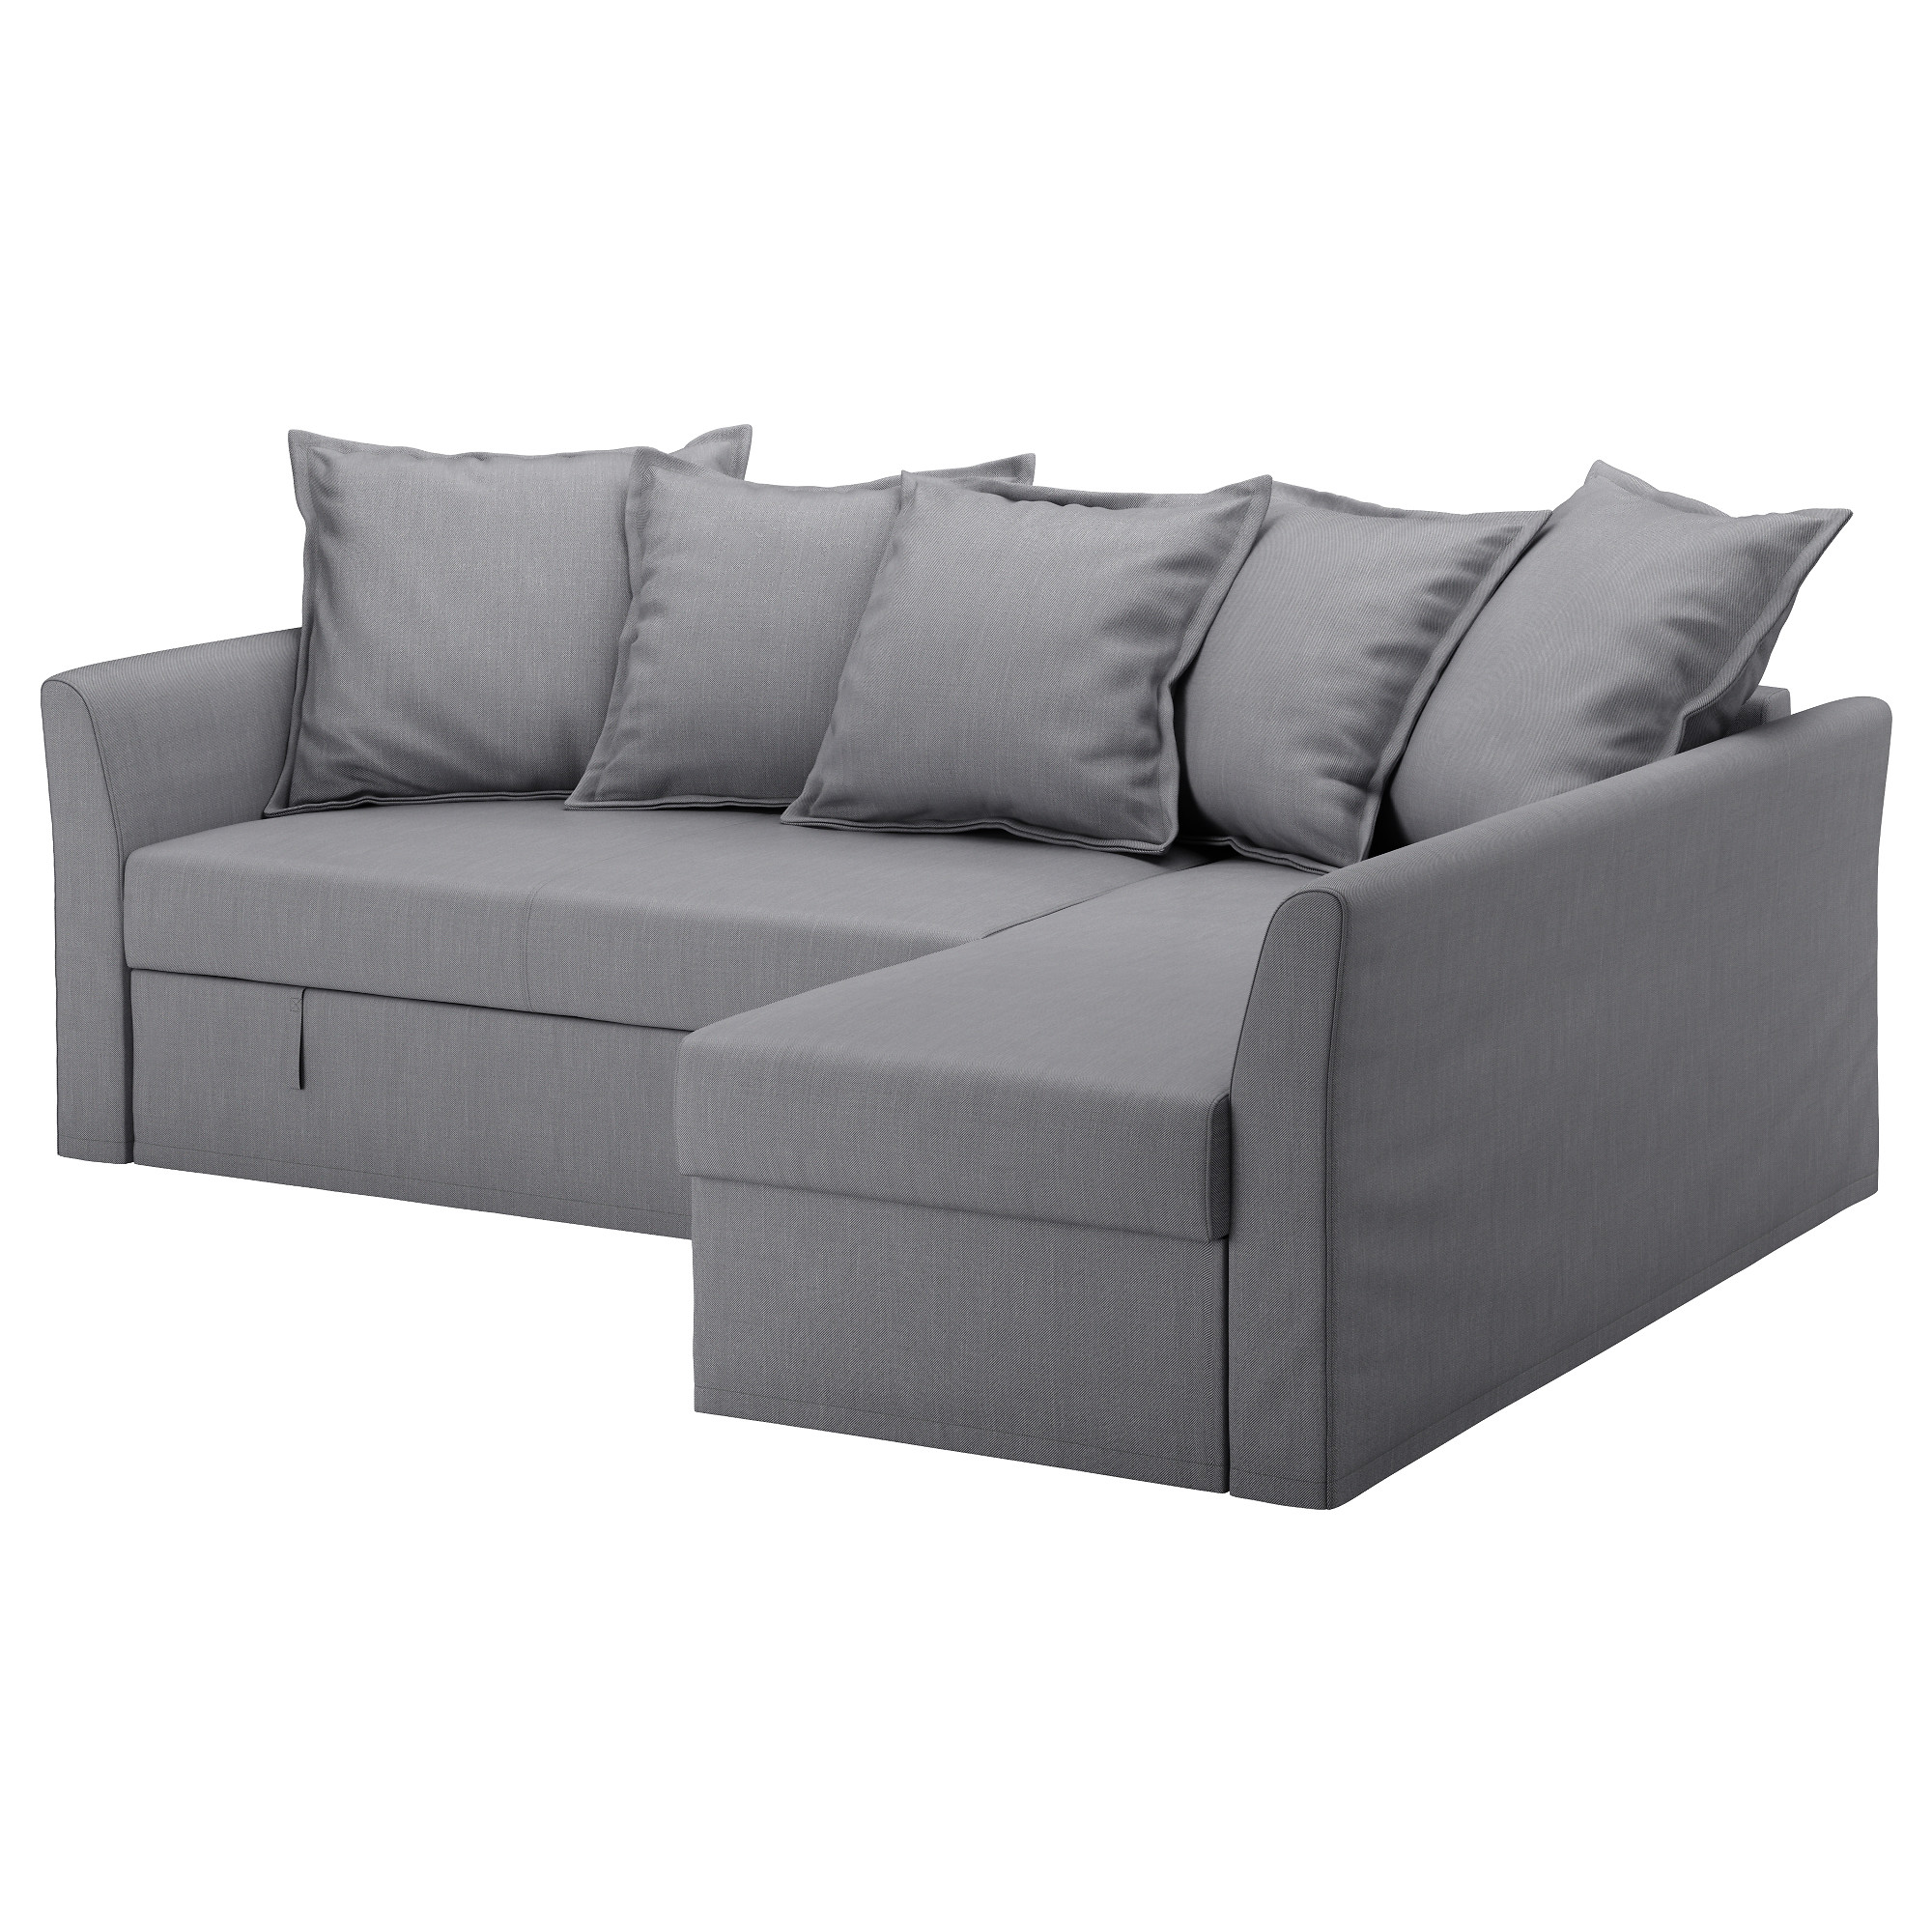 of bed armchair beautiful ikea chair elegant sofa sleeper comfortable interesting twin cover